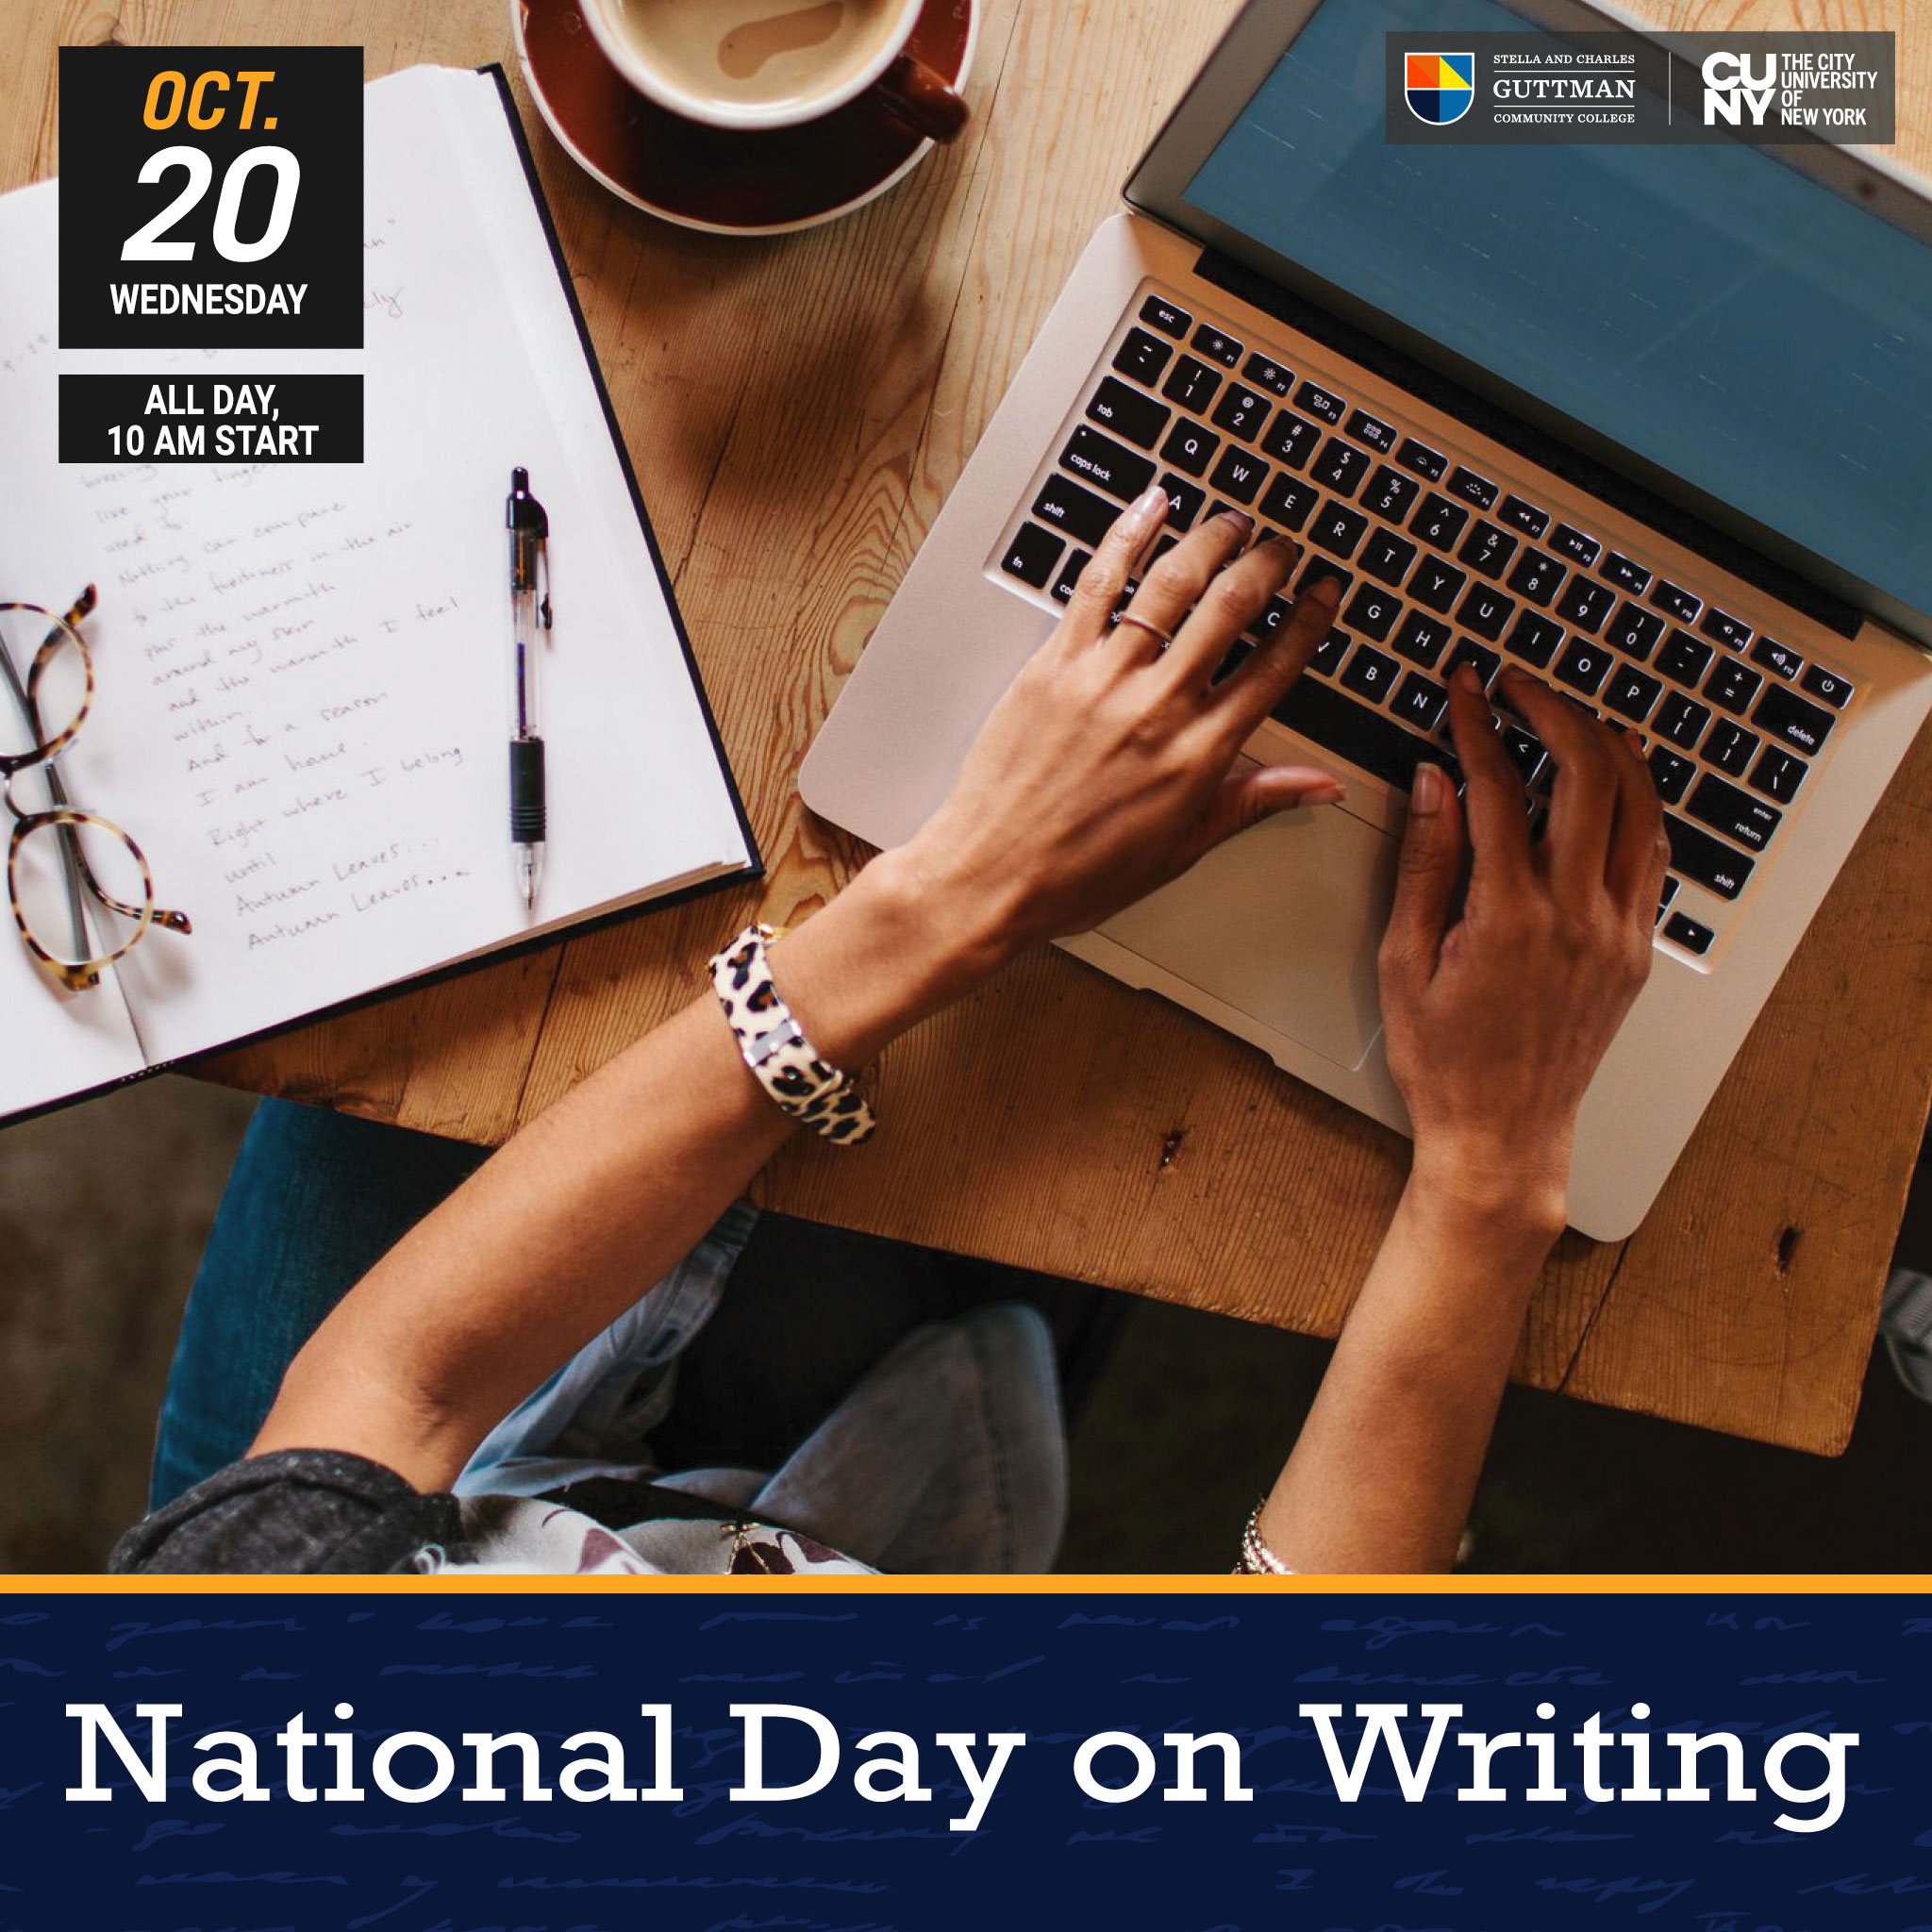 National Day on Writing - Wednesday, October 20